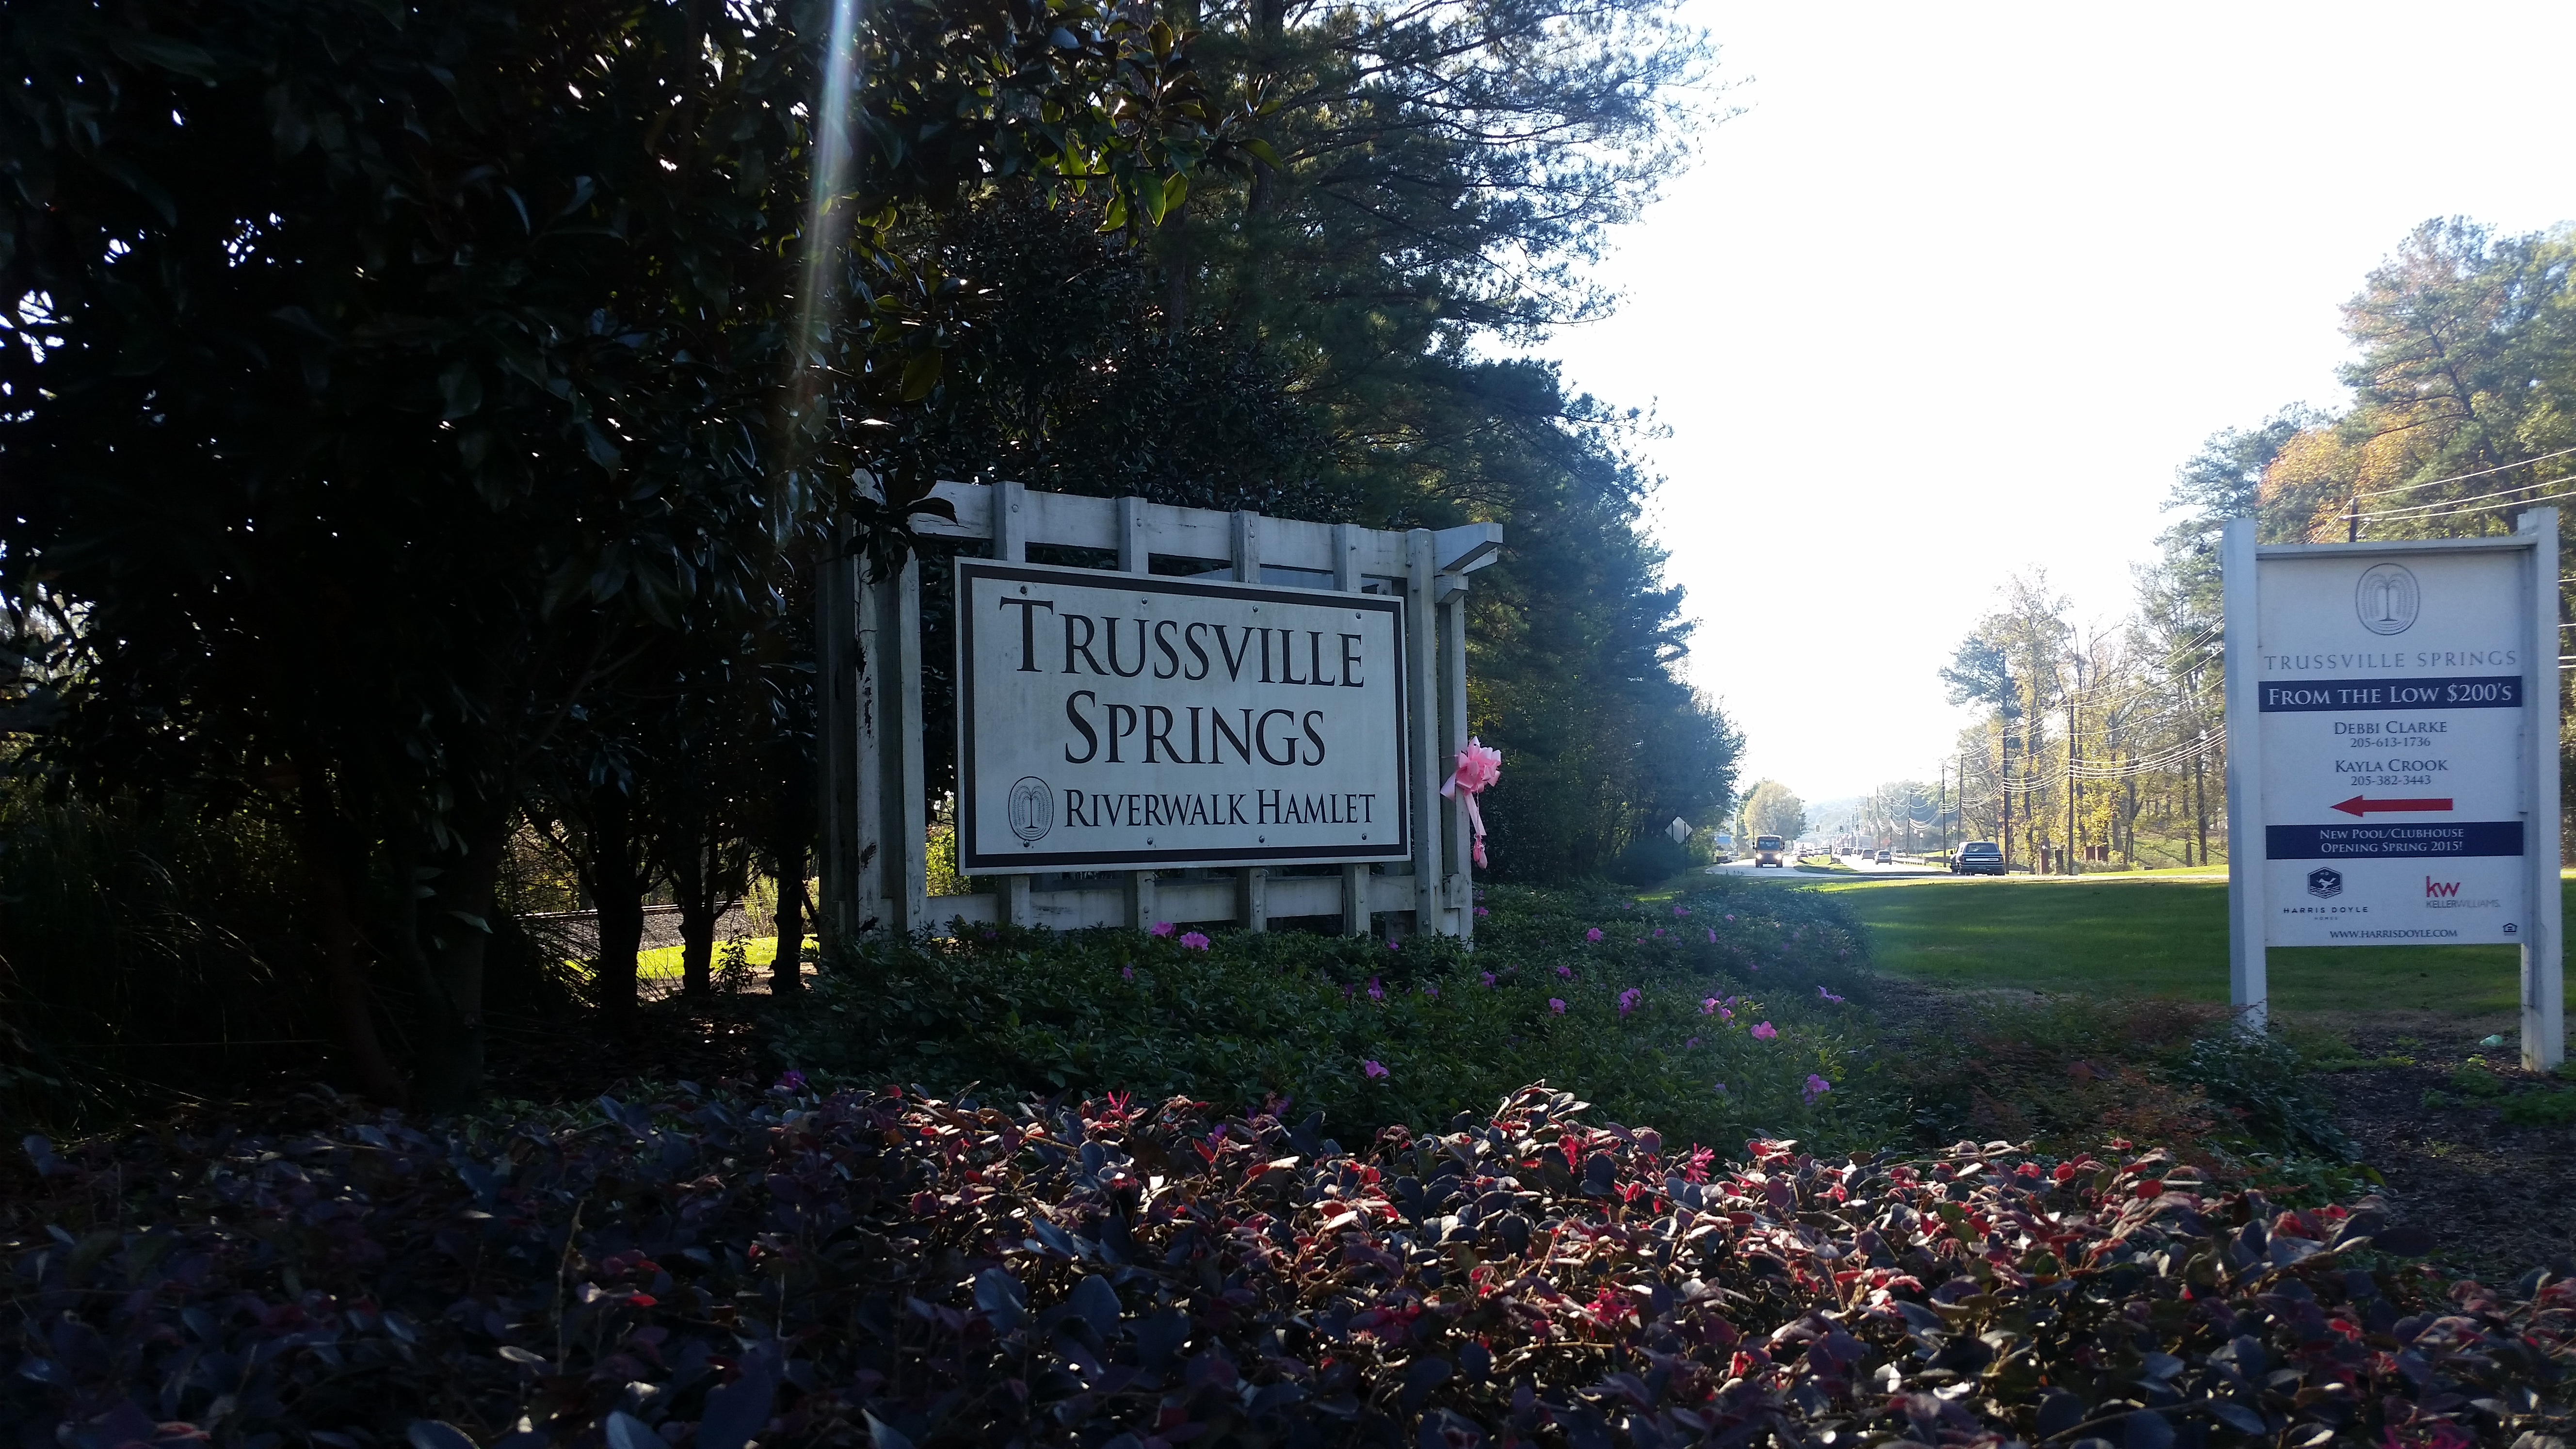 City Council meeting dominated by frustrated Trussville Springs residents